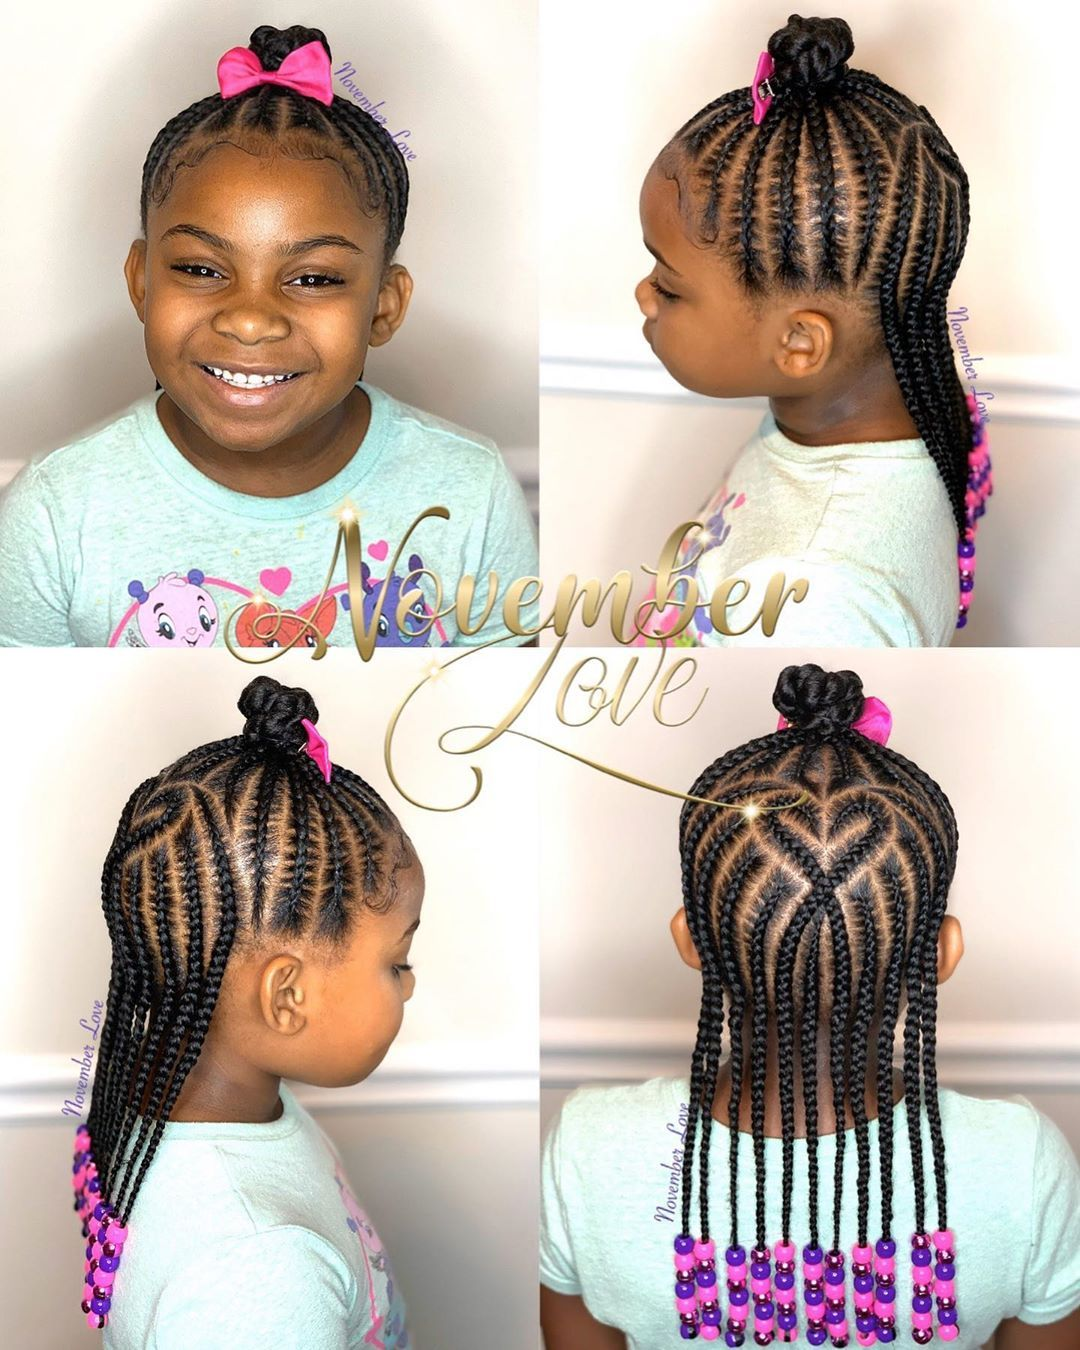 November Love On Instagram Children S Braids And Beads Booking Link In Bio Childrenhairstyle In 2020 Kids Hairstyles Hair Styles Cute Little Girl Hairstyles